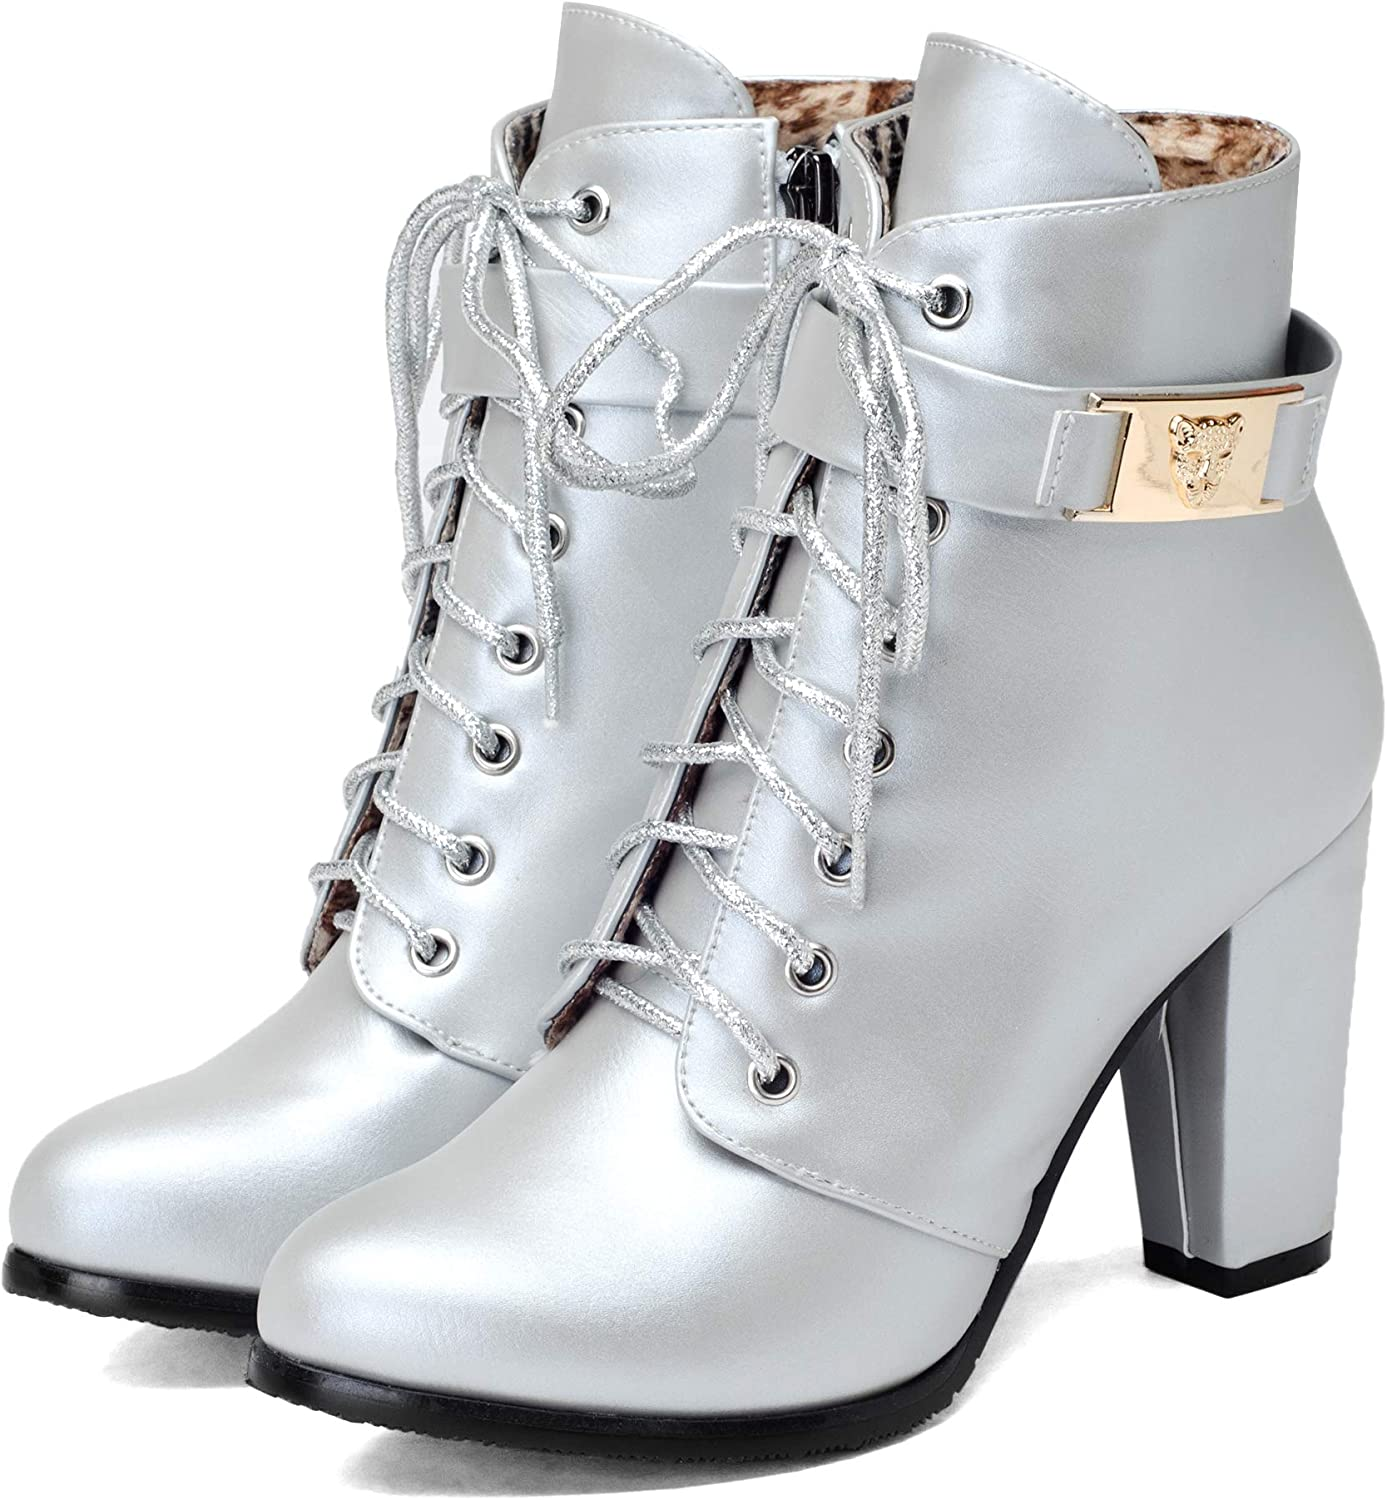 CLAKION Women PU Leather Boots Sexy Lace up Buckle High Heels Boots